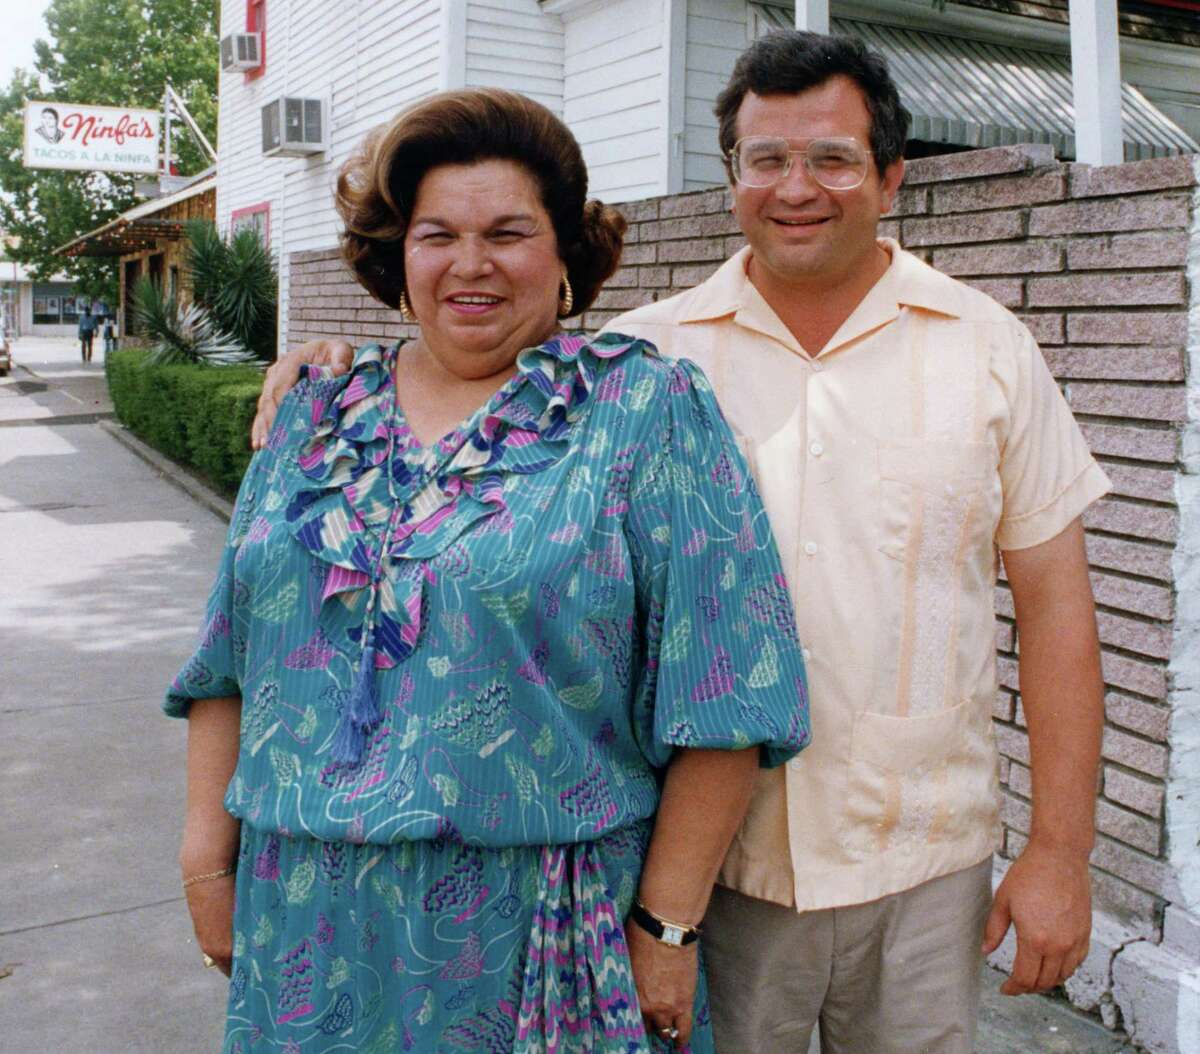 06/21/1988 - Ninfa Laurenzo and her son Roland Laurenzo, operators of Ninfa's Mexican restaurant chain, stand outside the old Laurenzo family home, now the office of Bambolino's, the family's new drive-through pizza venture. Next door is the original Ninfa's restaurant at 2704 Navigation.